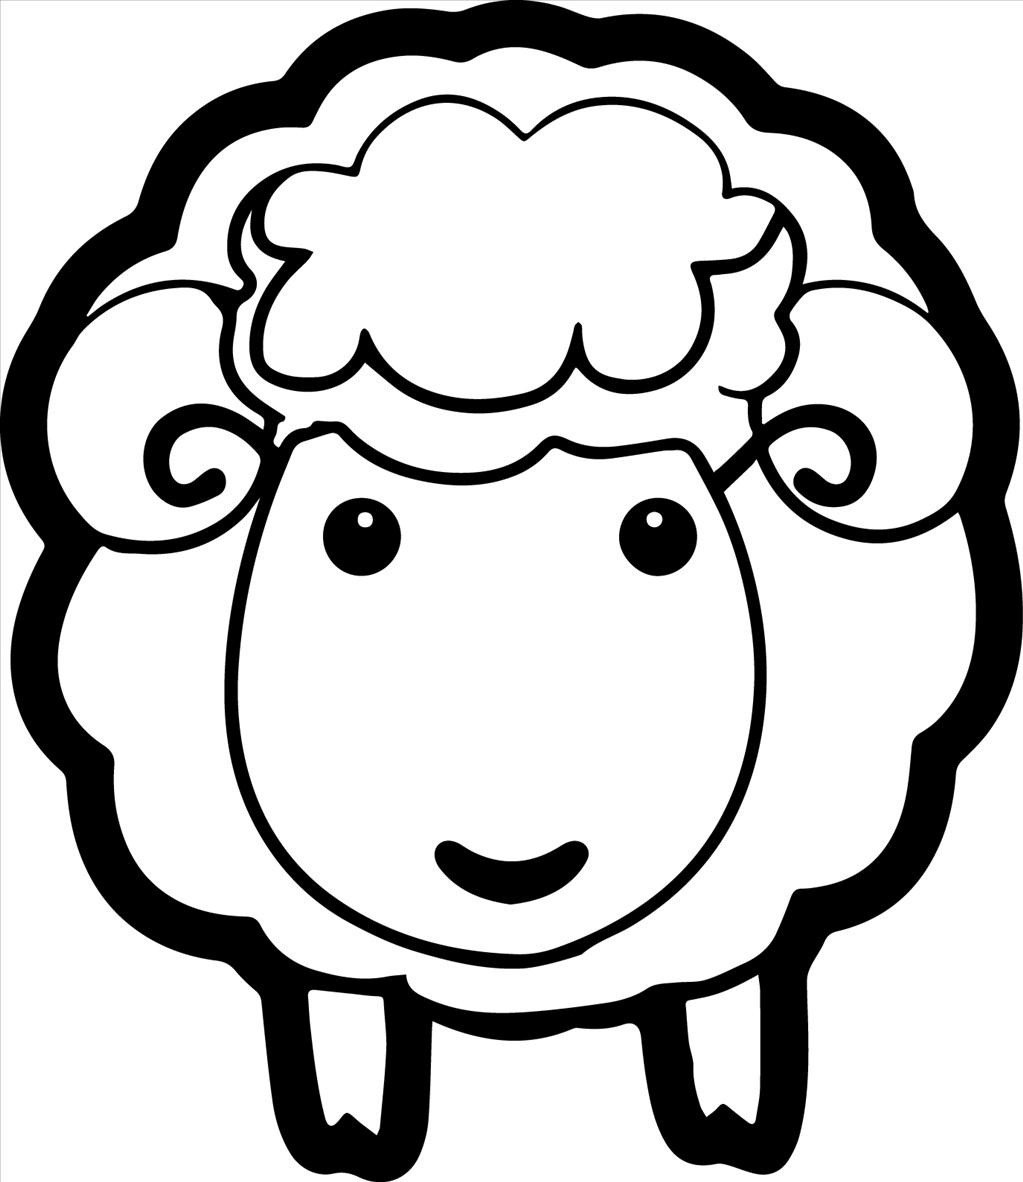 Sheep Coloring Page At Getdrawings Com Free For Personal Use Sheep